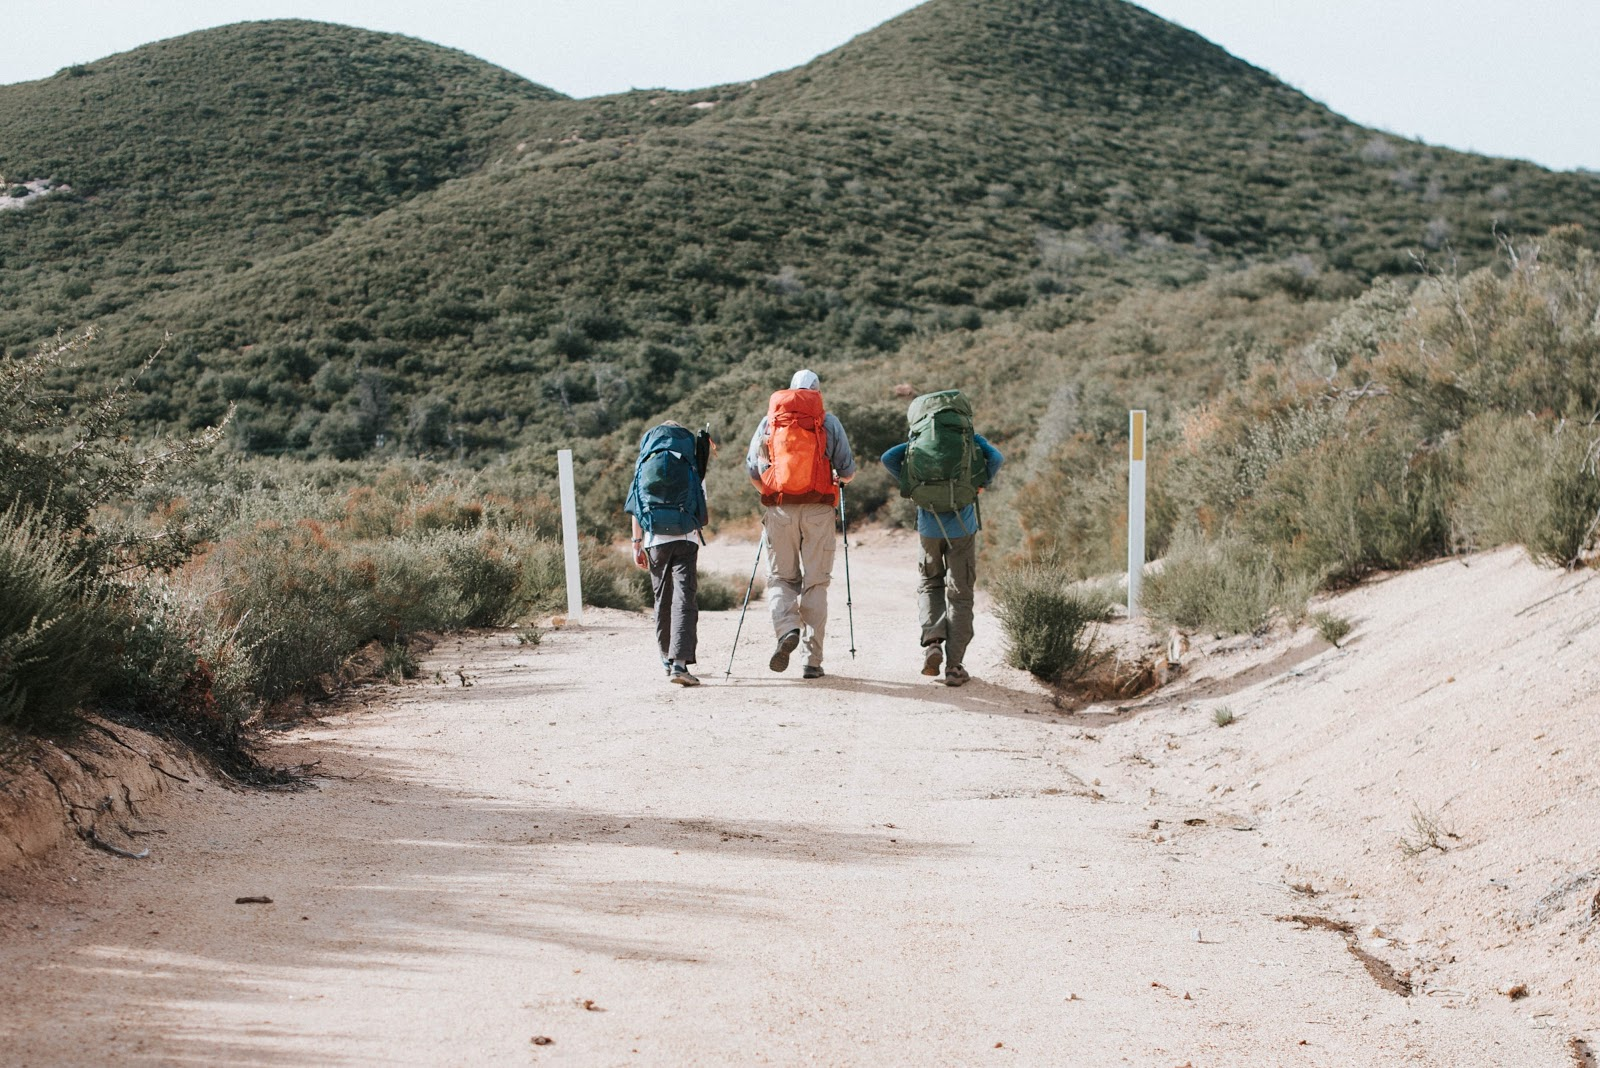 3 people hiking on a trail in Irvine